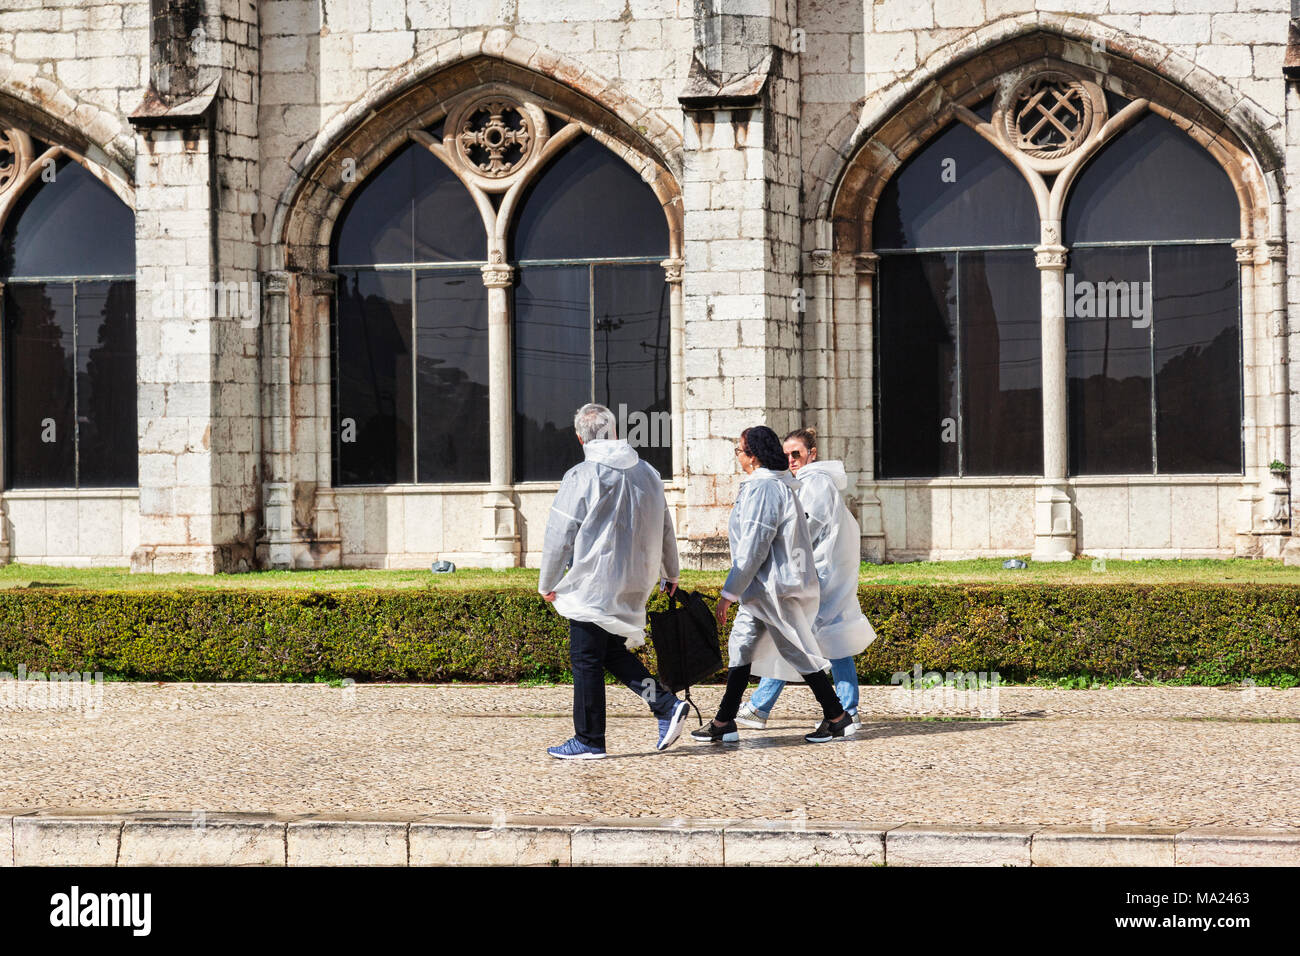 5 March 2018: Lisbon, Portugal - Family wearing rain capes after a shower of rain at the Monastery of Jeronimos Belem Lisbon Portugal - Stock Image